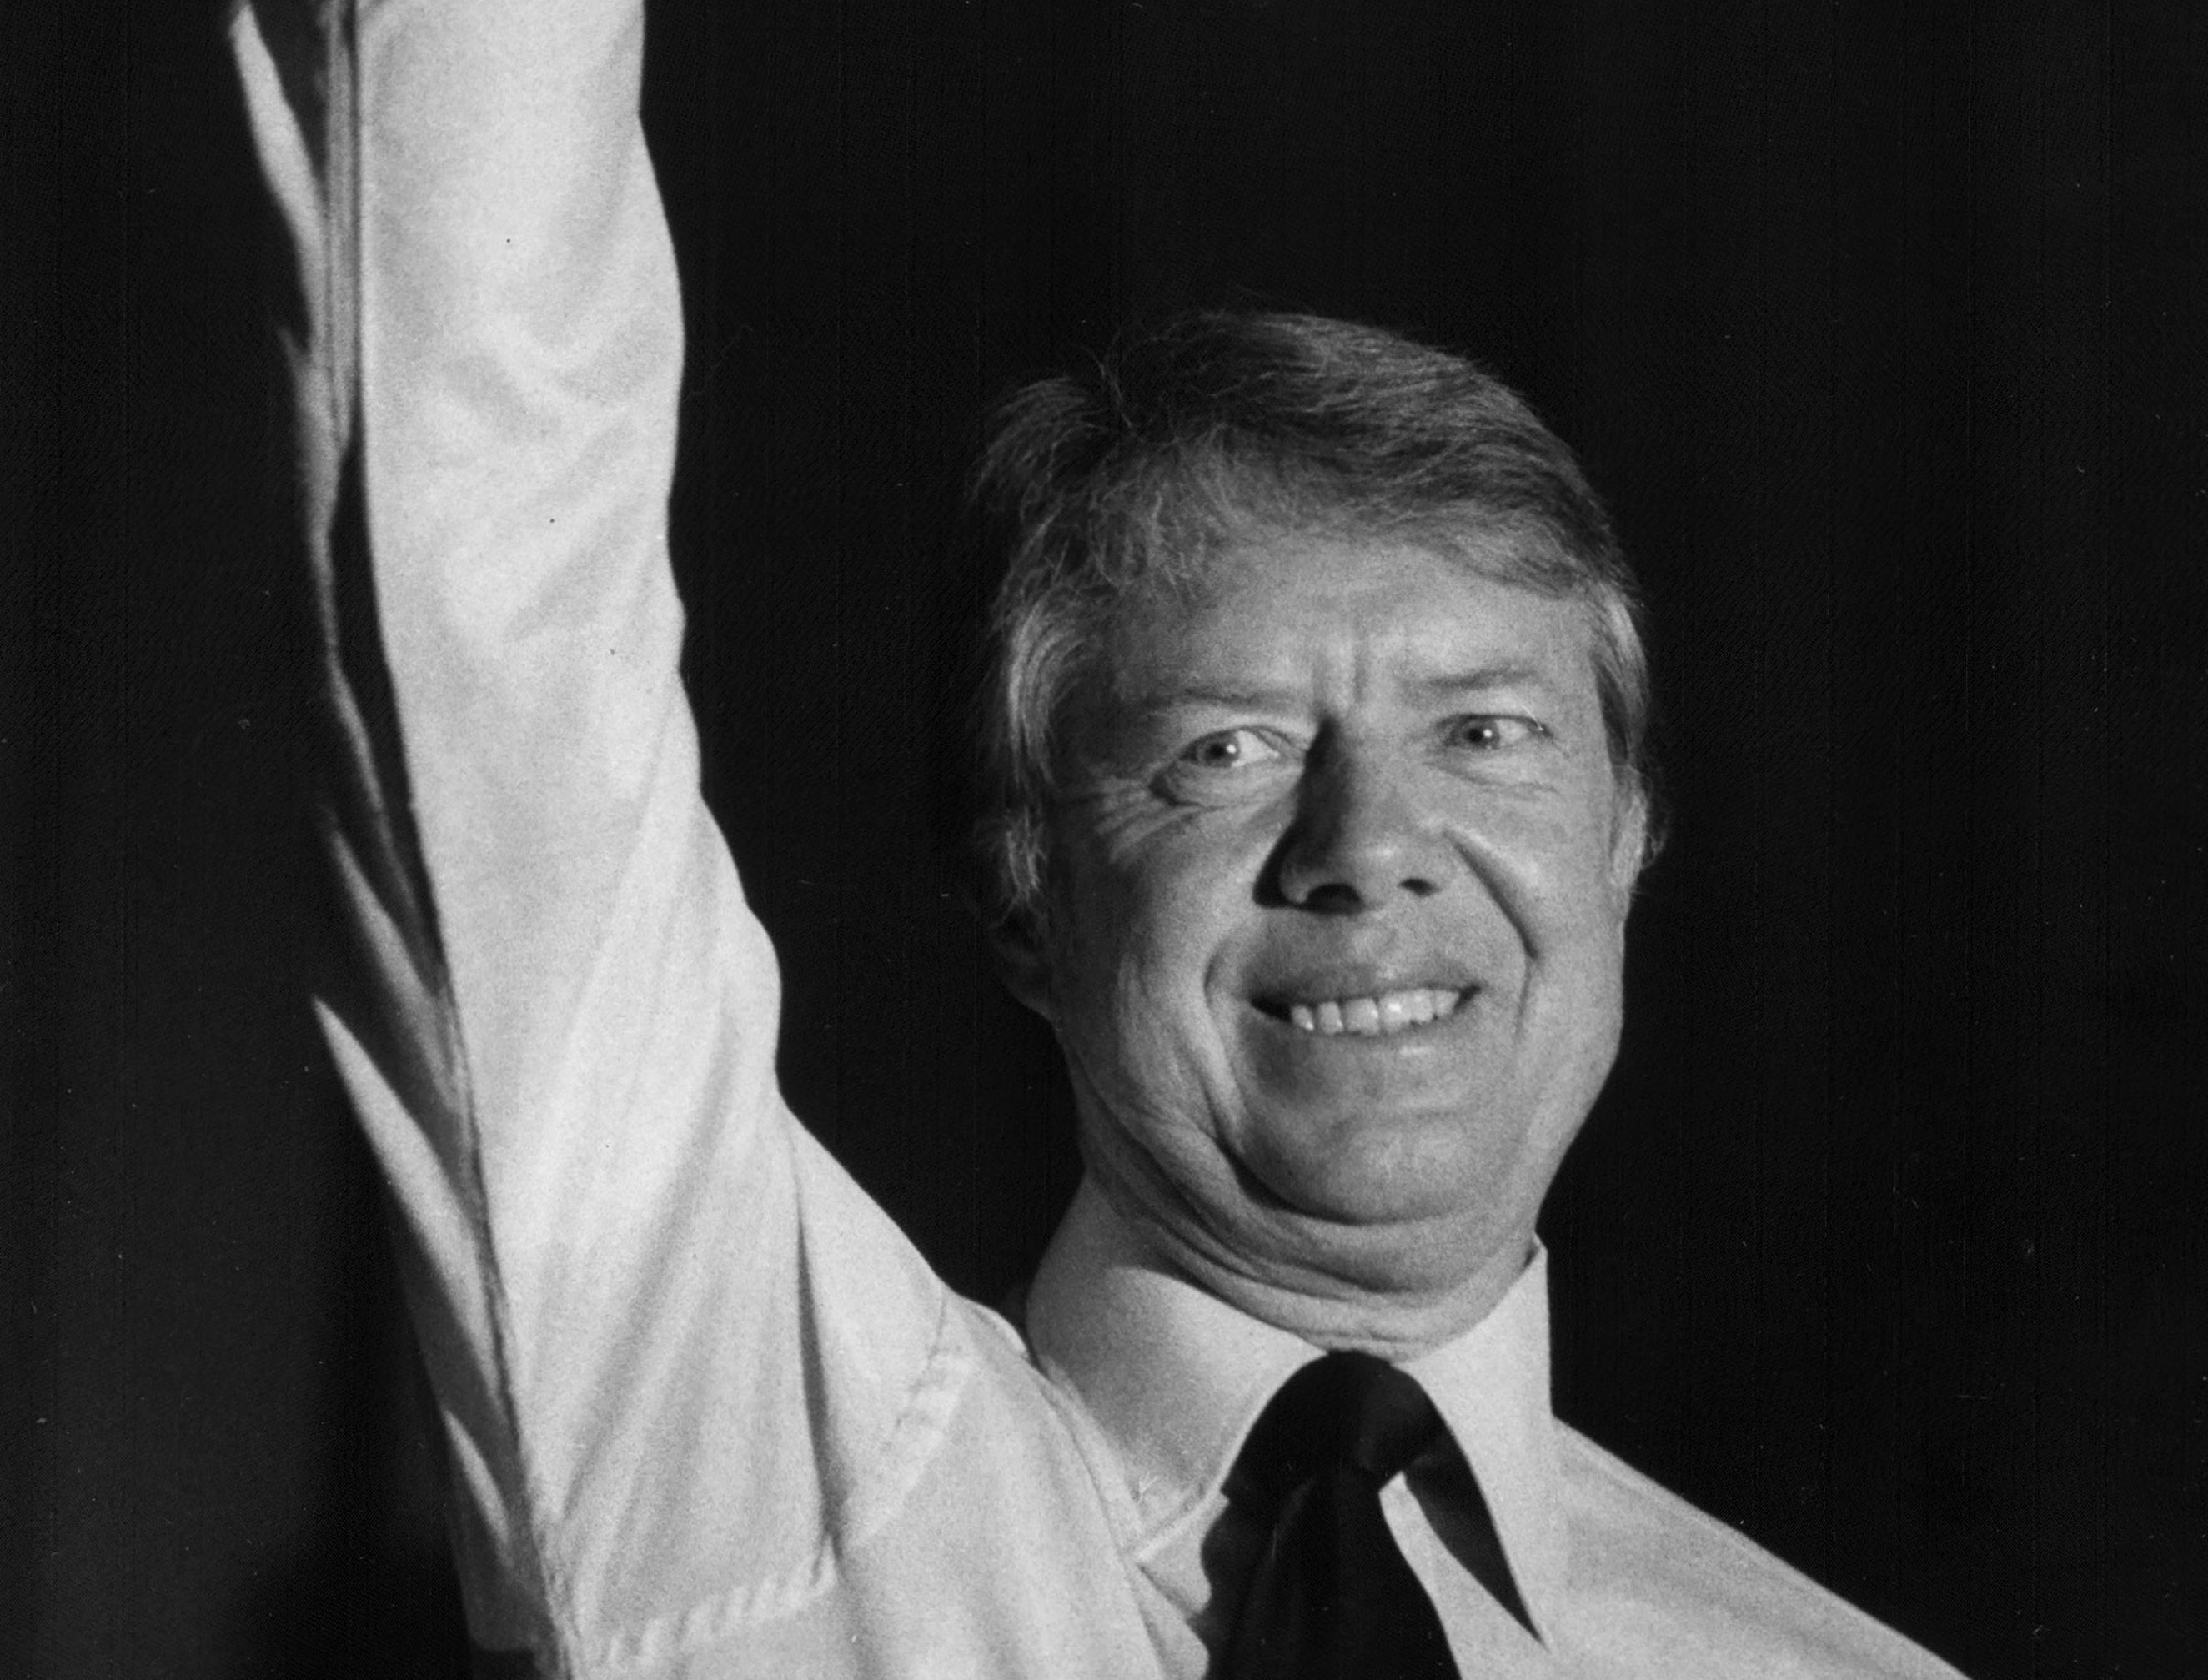 President Carter waves to the crowd at a rally in Paterson, N.J. on Oct. 23, 1976.